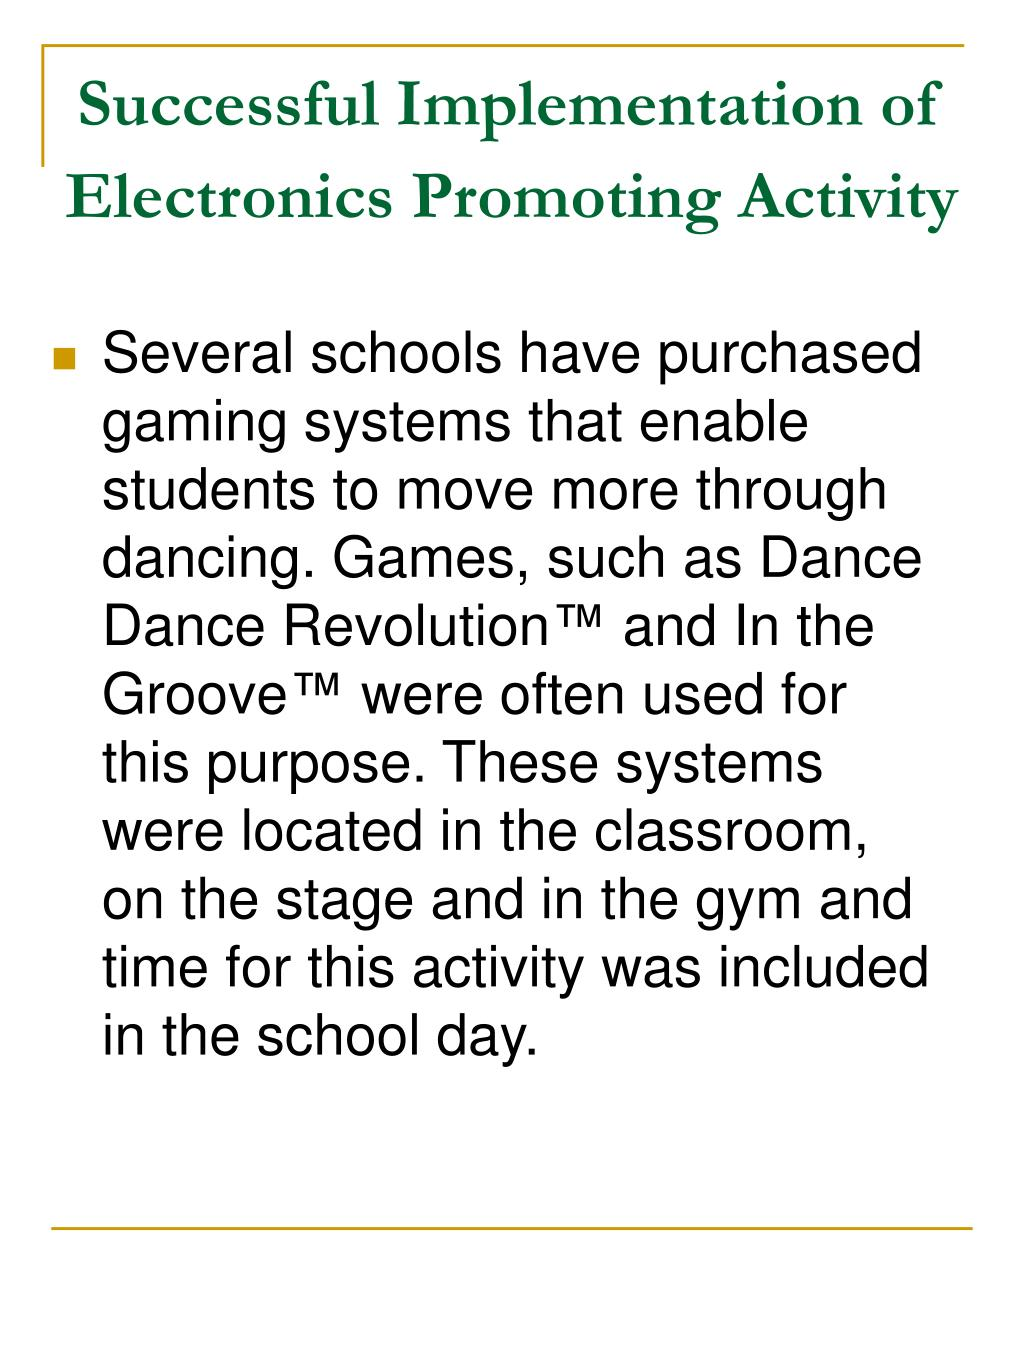 Successful Implementation of Electronics Promoting Activity